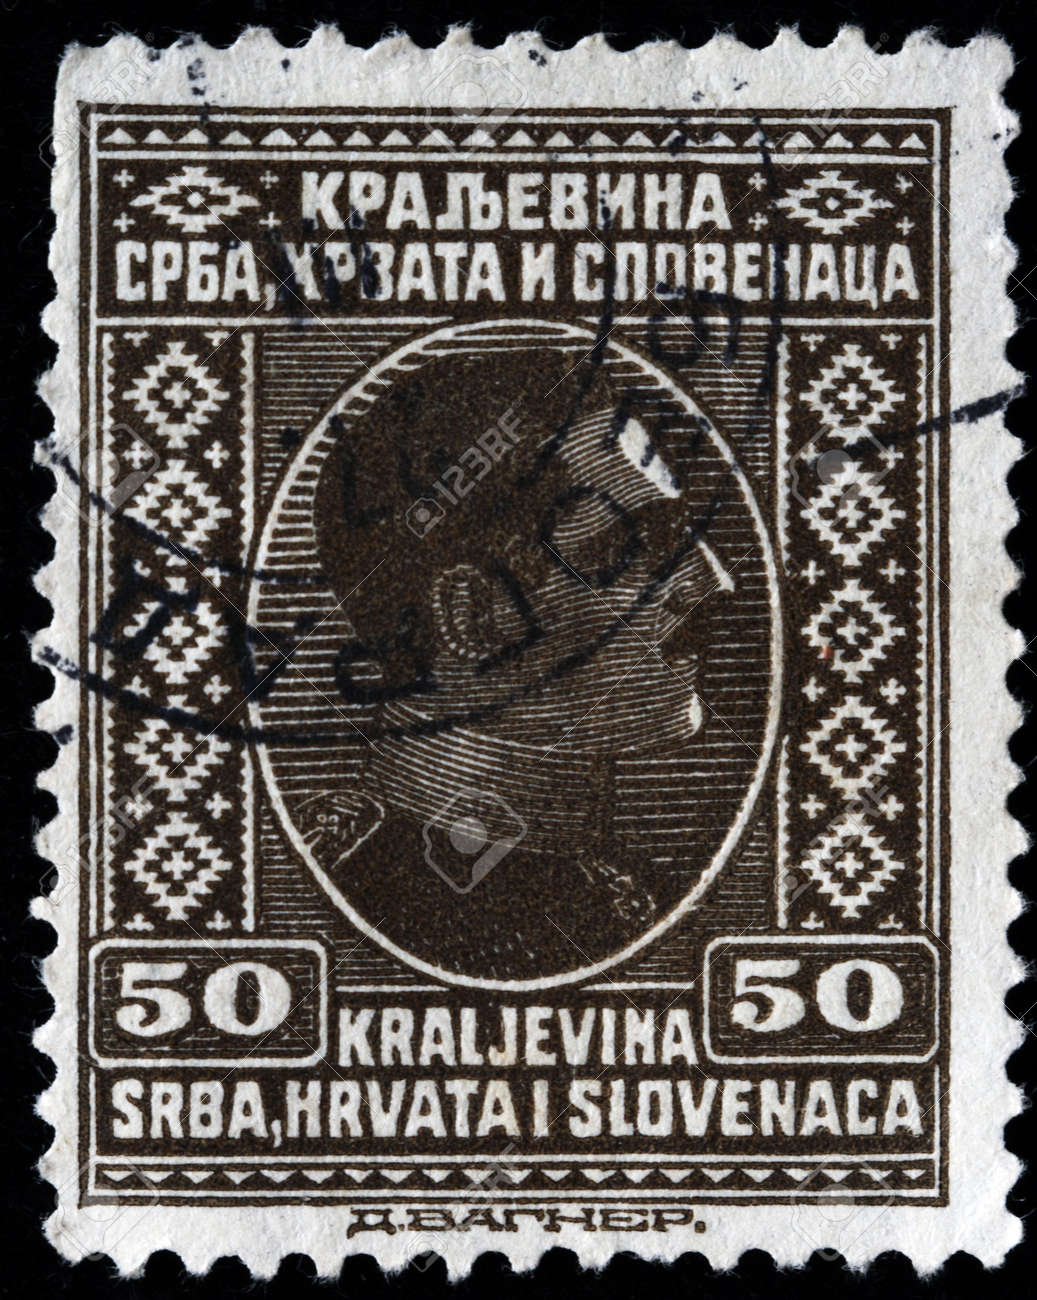 KINGDOM OF SERBIA, CROATIA AND SLAVONIA - CIRCA 1924: A stamp printed in Kingdom of Serbia, Croatia and Slavonia shows king Alexander I of Yugoslavia, circa 1924 Stock Photo - 8163207